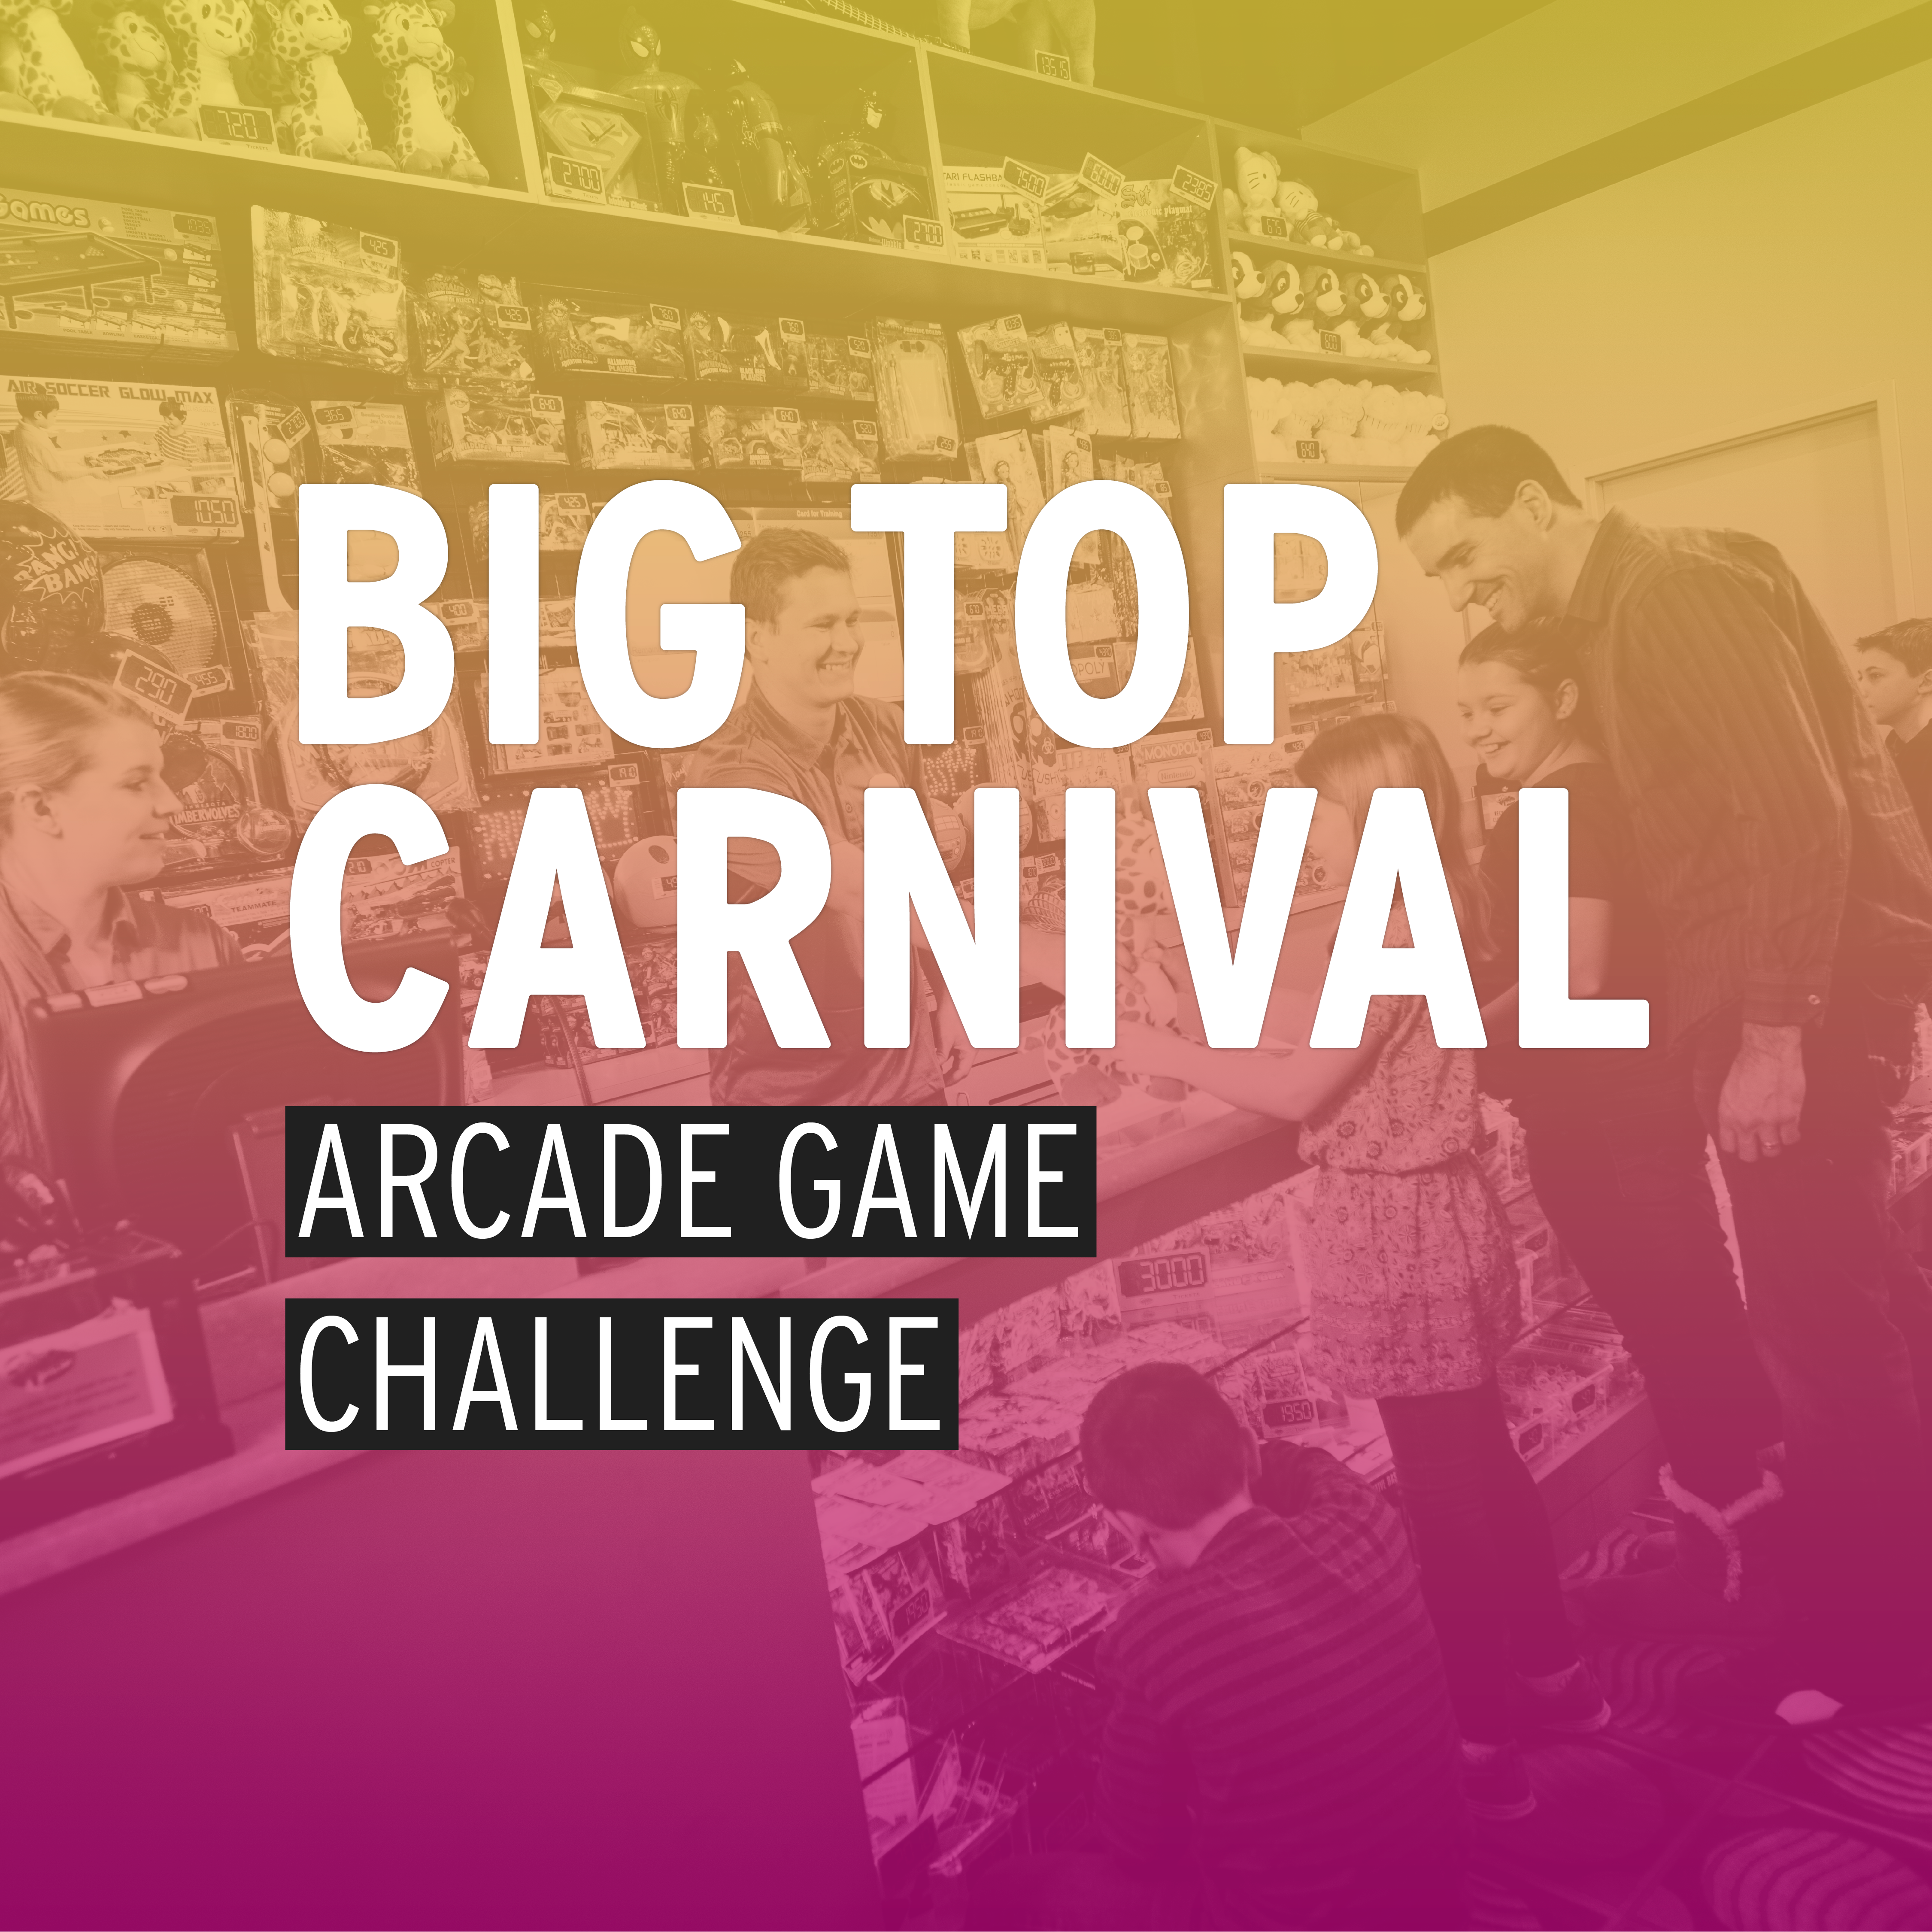 Big Top Carnival Arcade Game Challenge